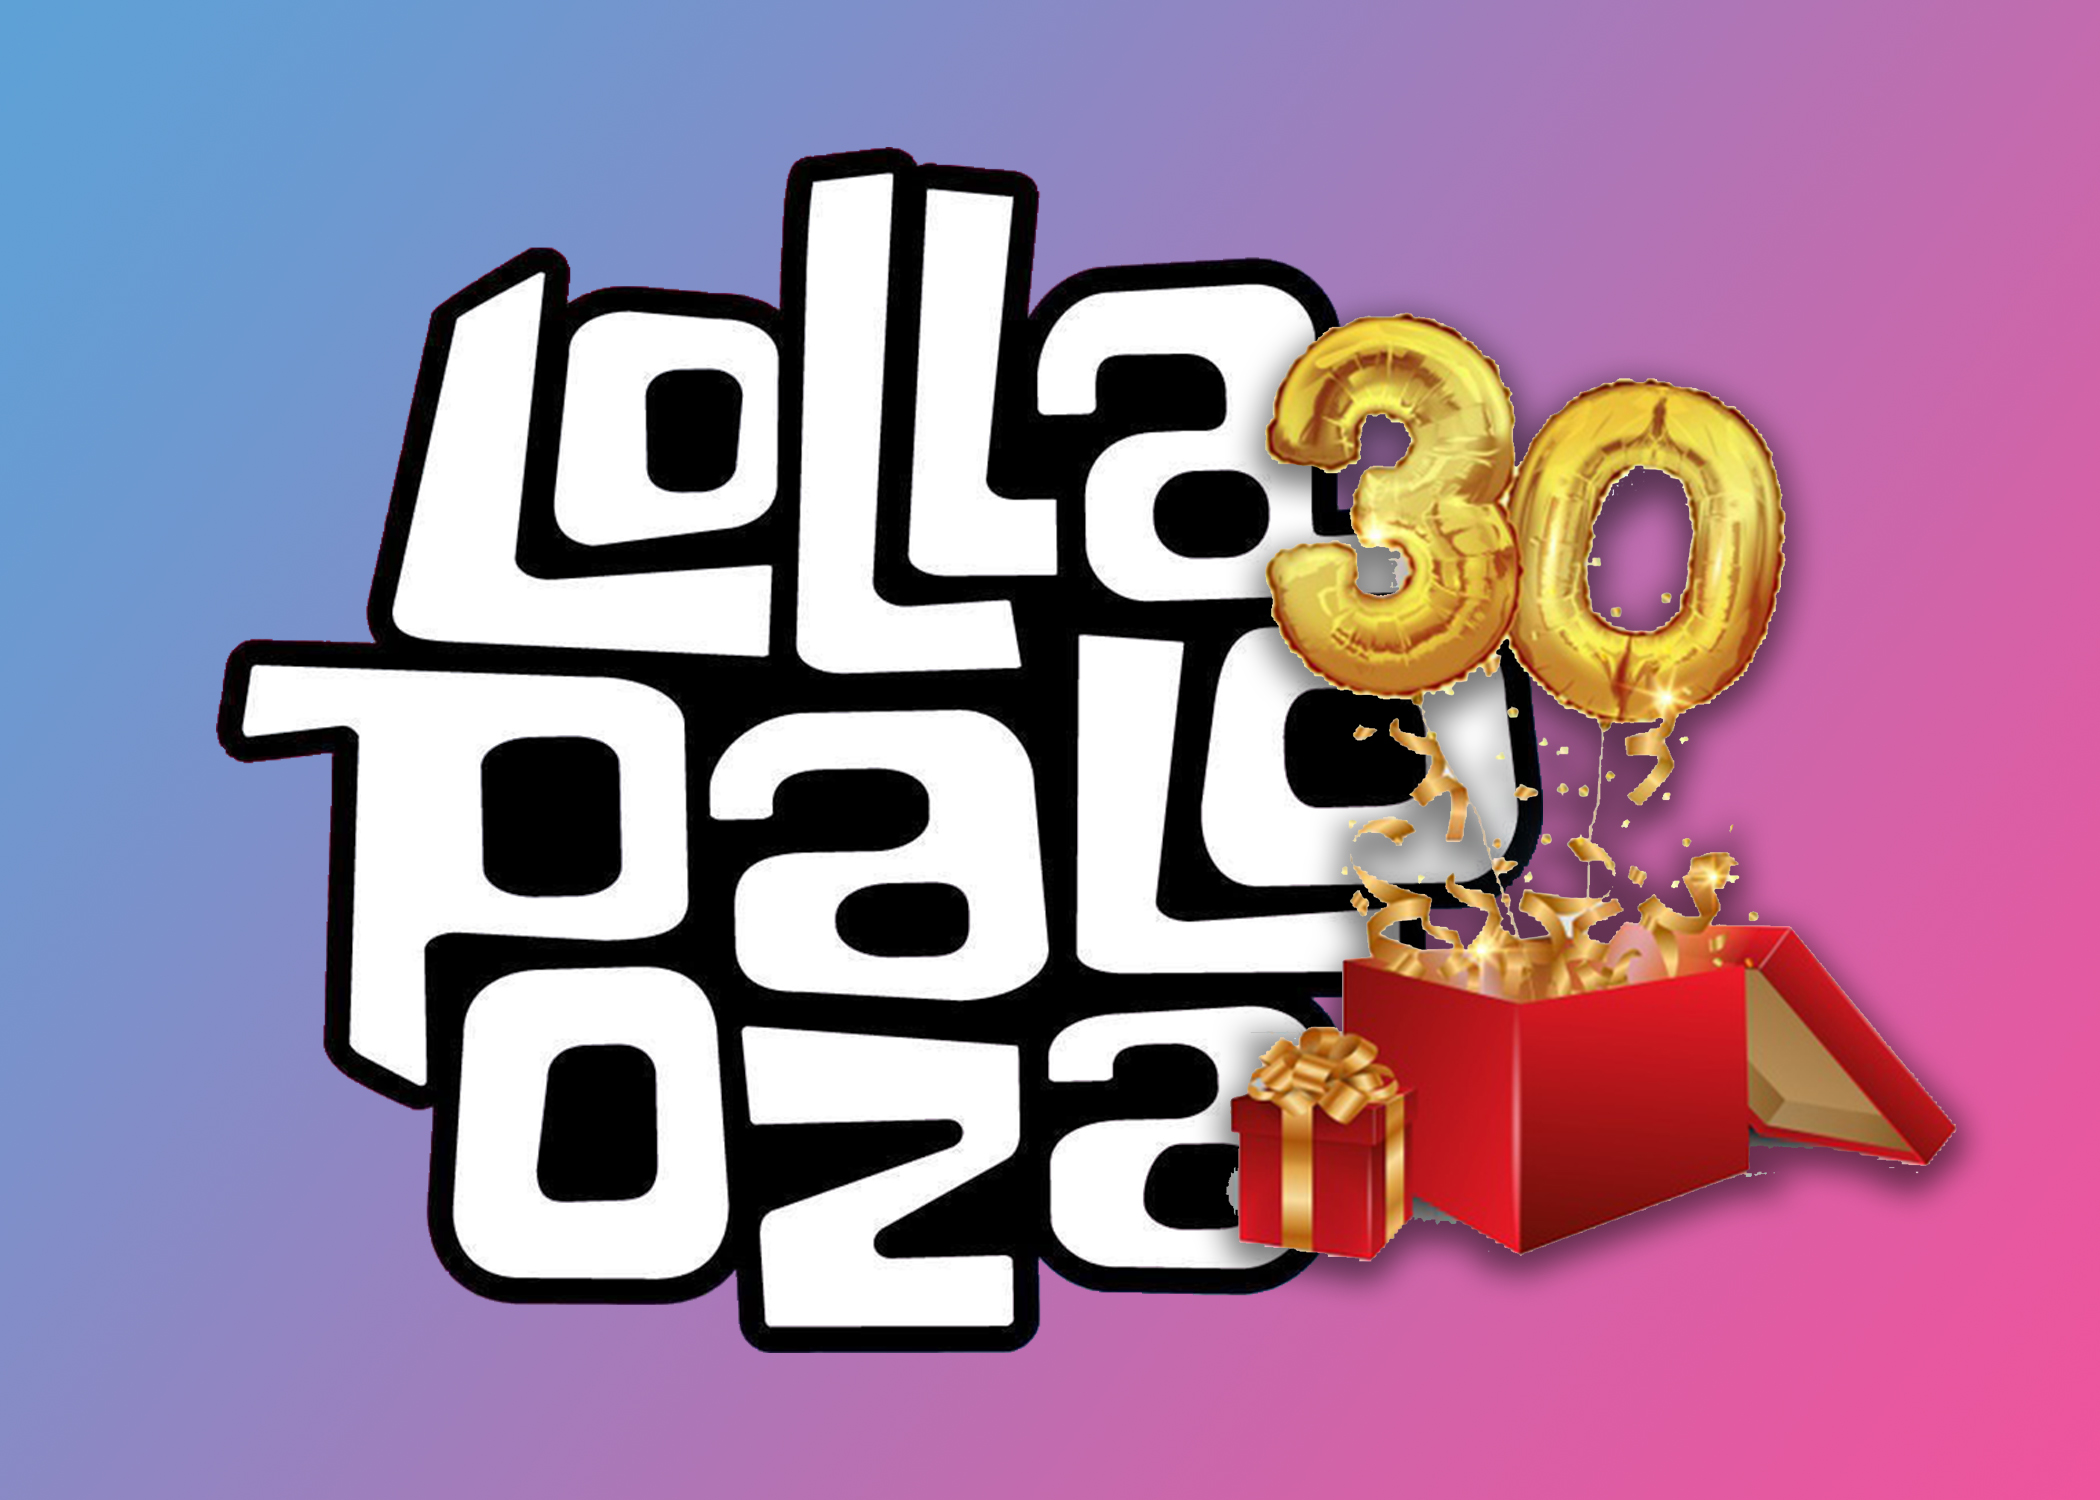 The Return Of The Giant Is Back! Lollapalooza Is Making Its Return To Grant Park Chicago And Bringing More Than A Few Friends Along To Celebrate 30 Years.